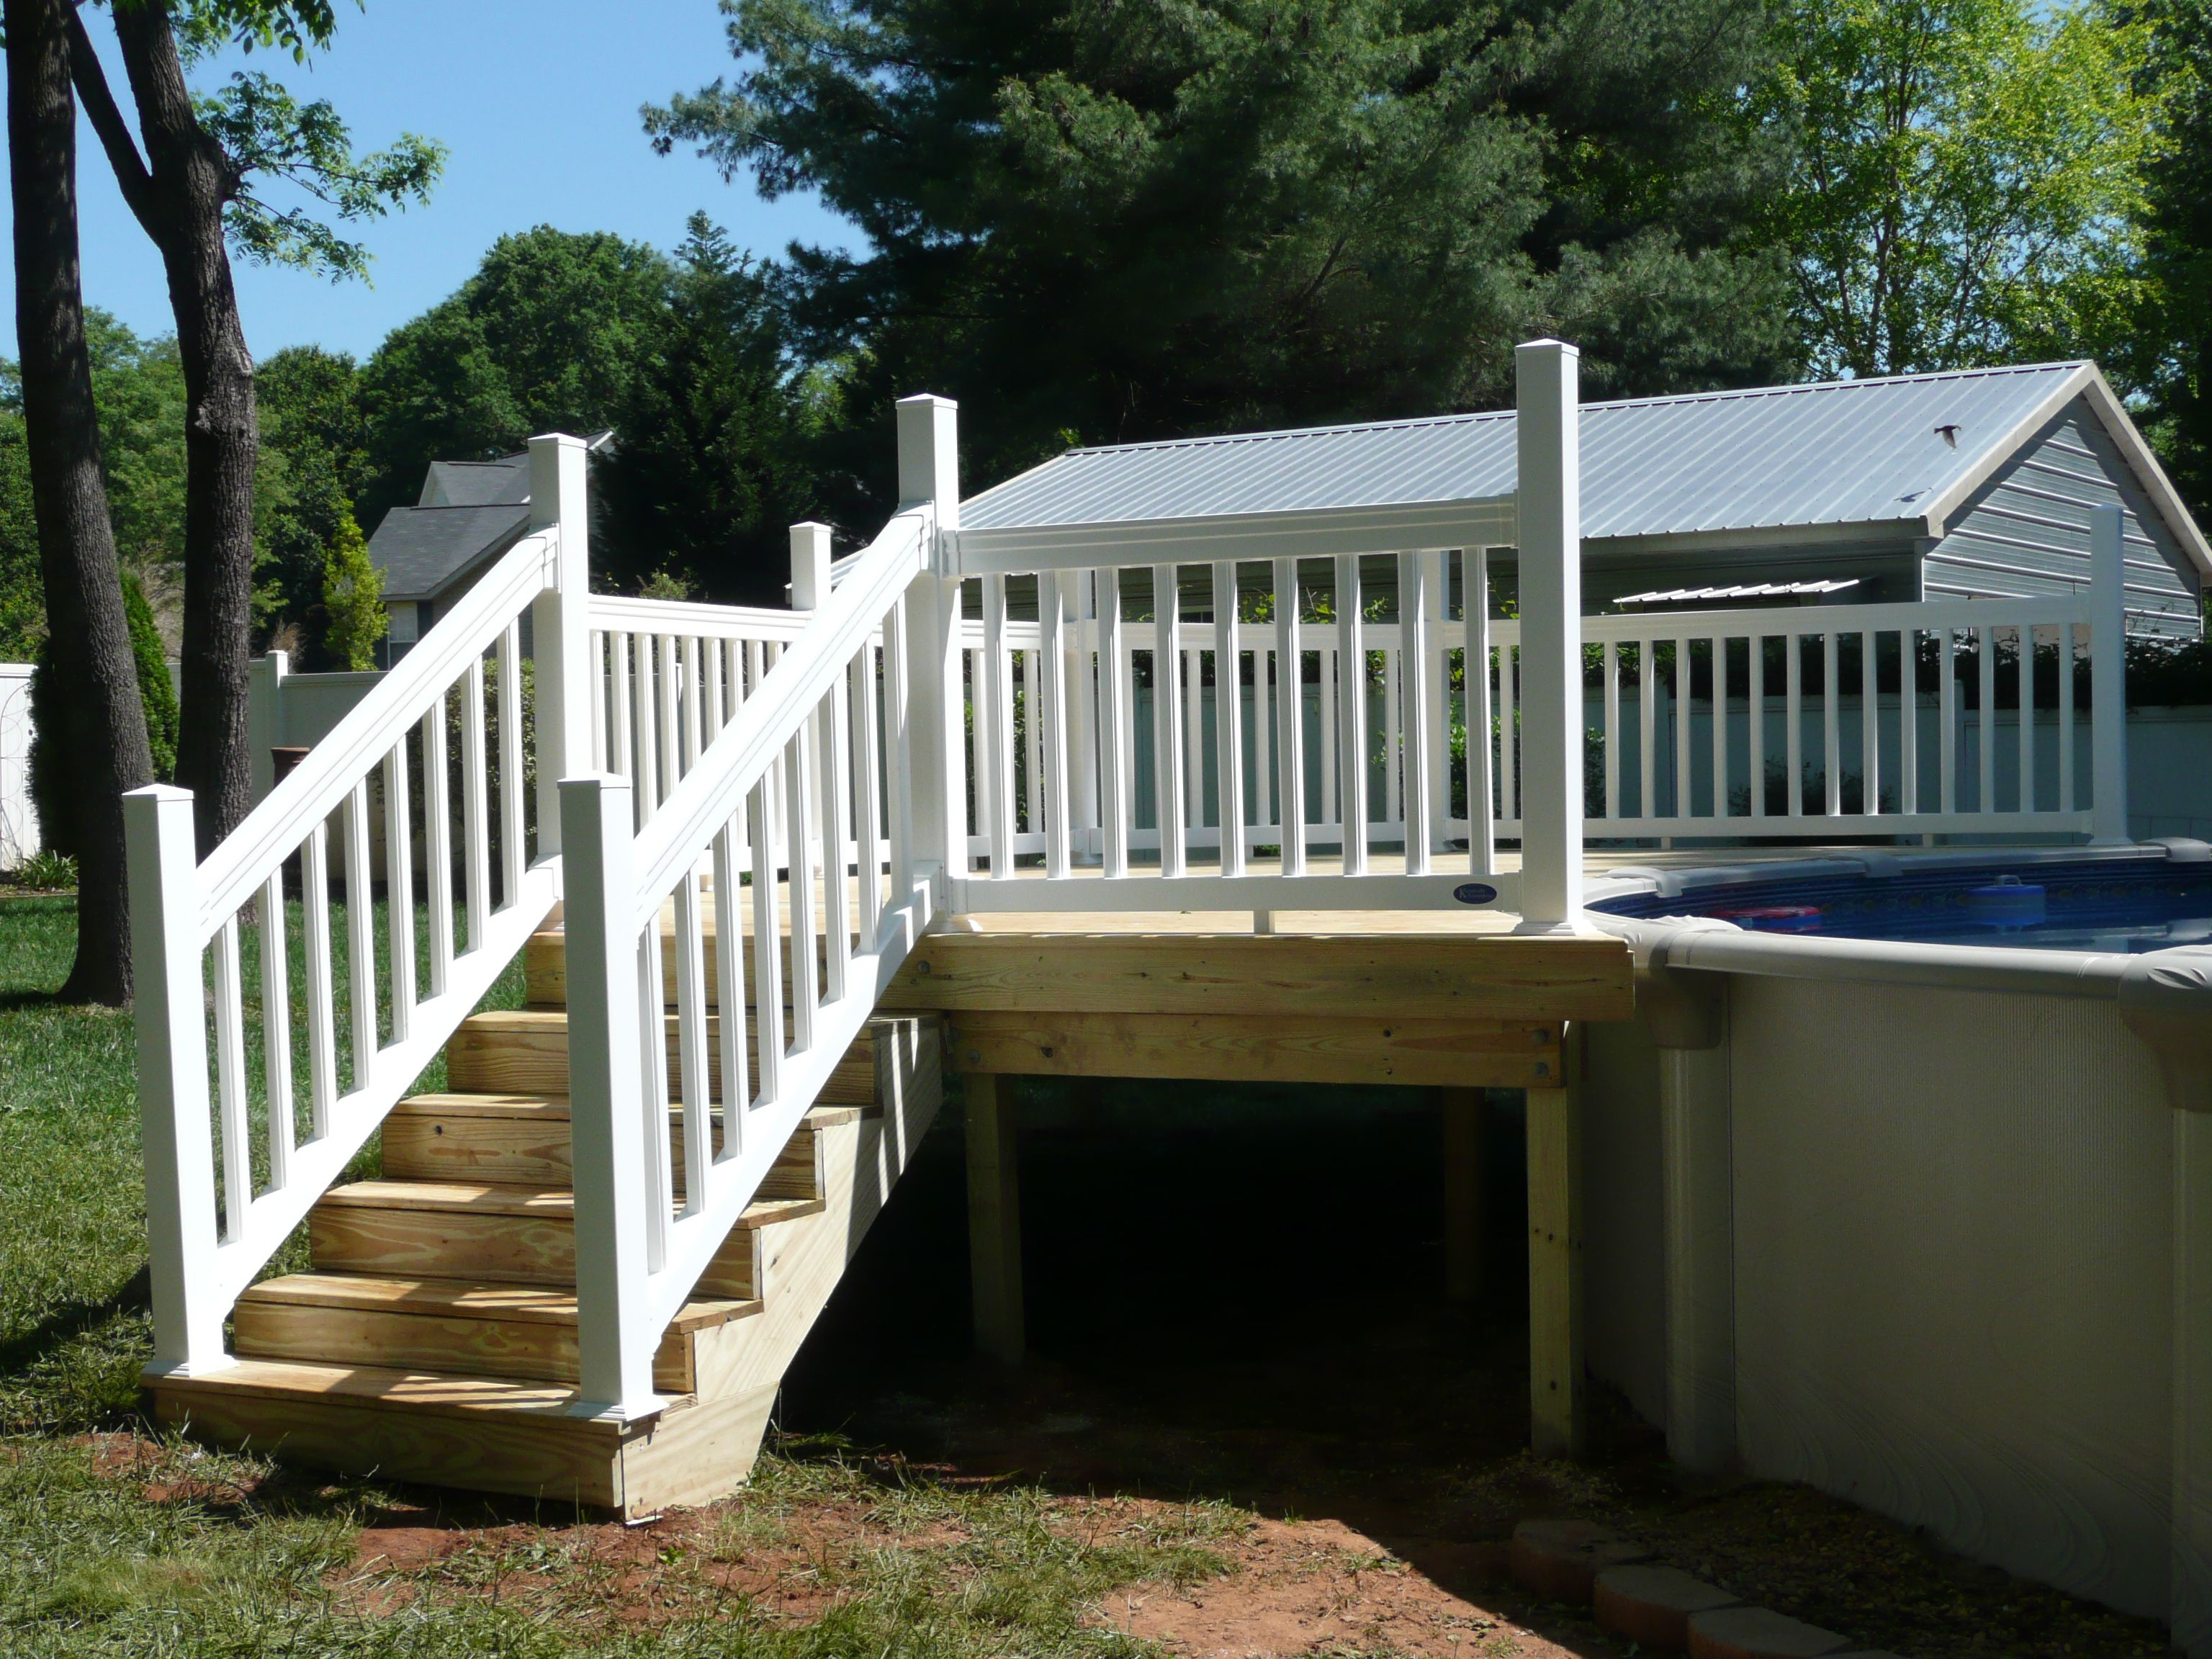 Treated Wood Deck On Girders With White Vinyl Railing